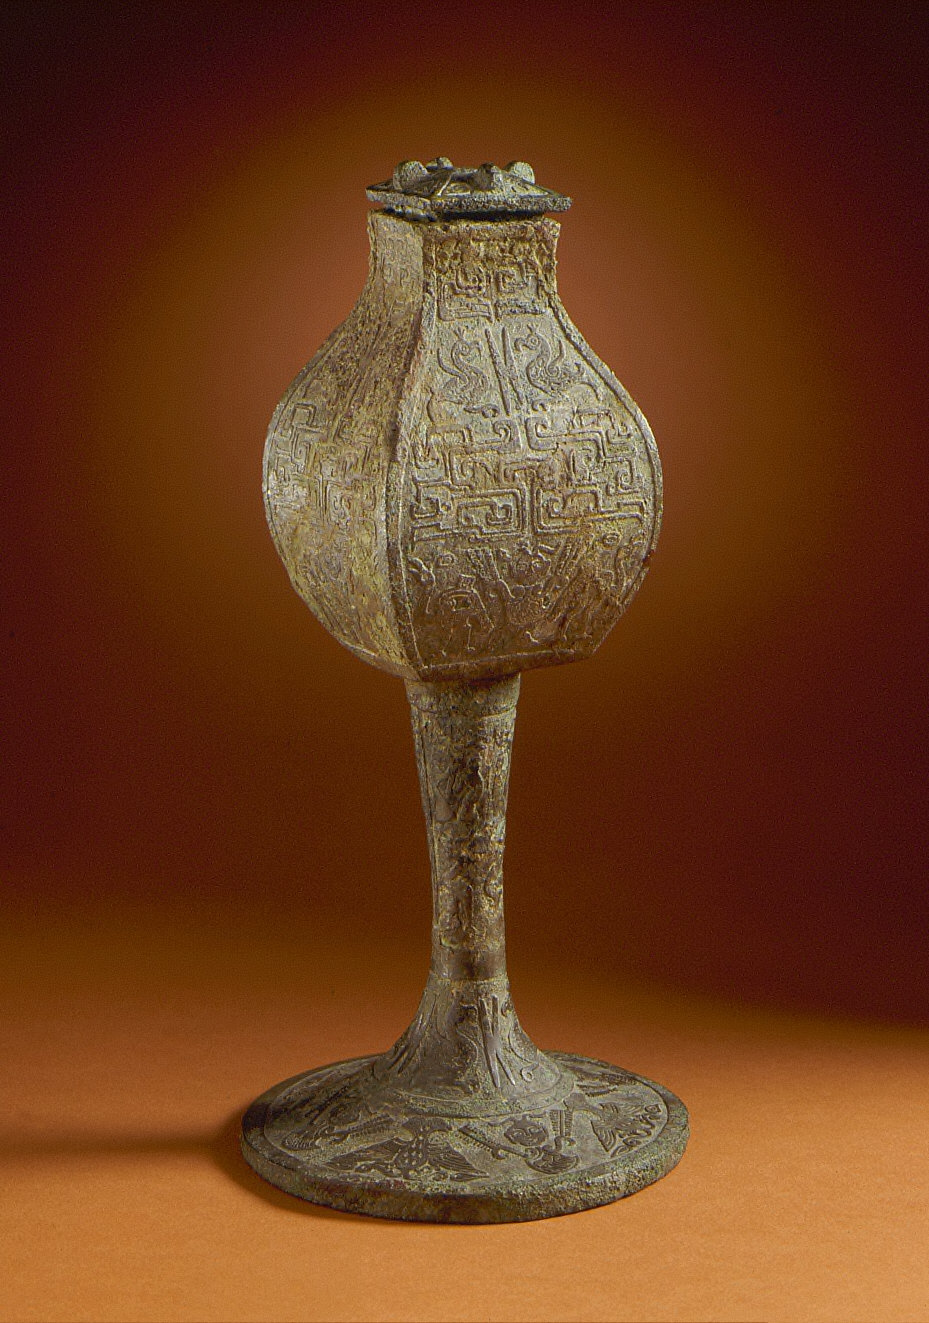 Lidded Square Wine Jar (Fanghu) with Natural and Supernatural Creatures